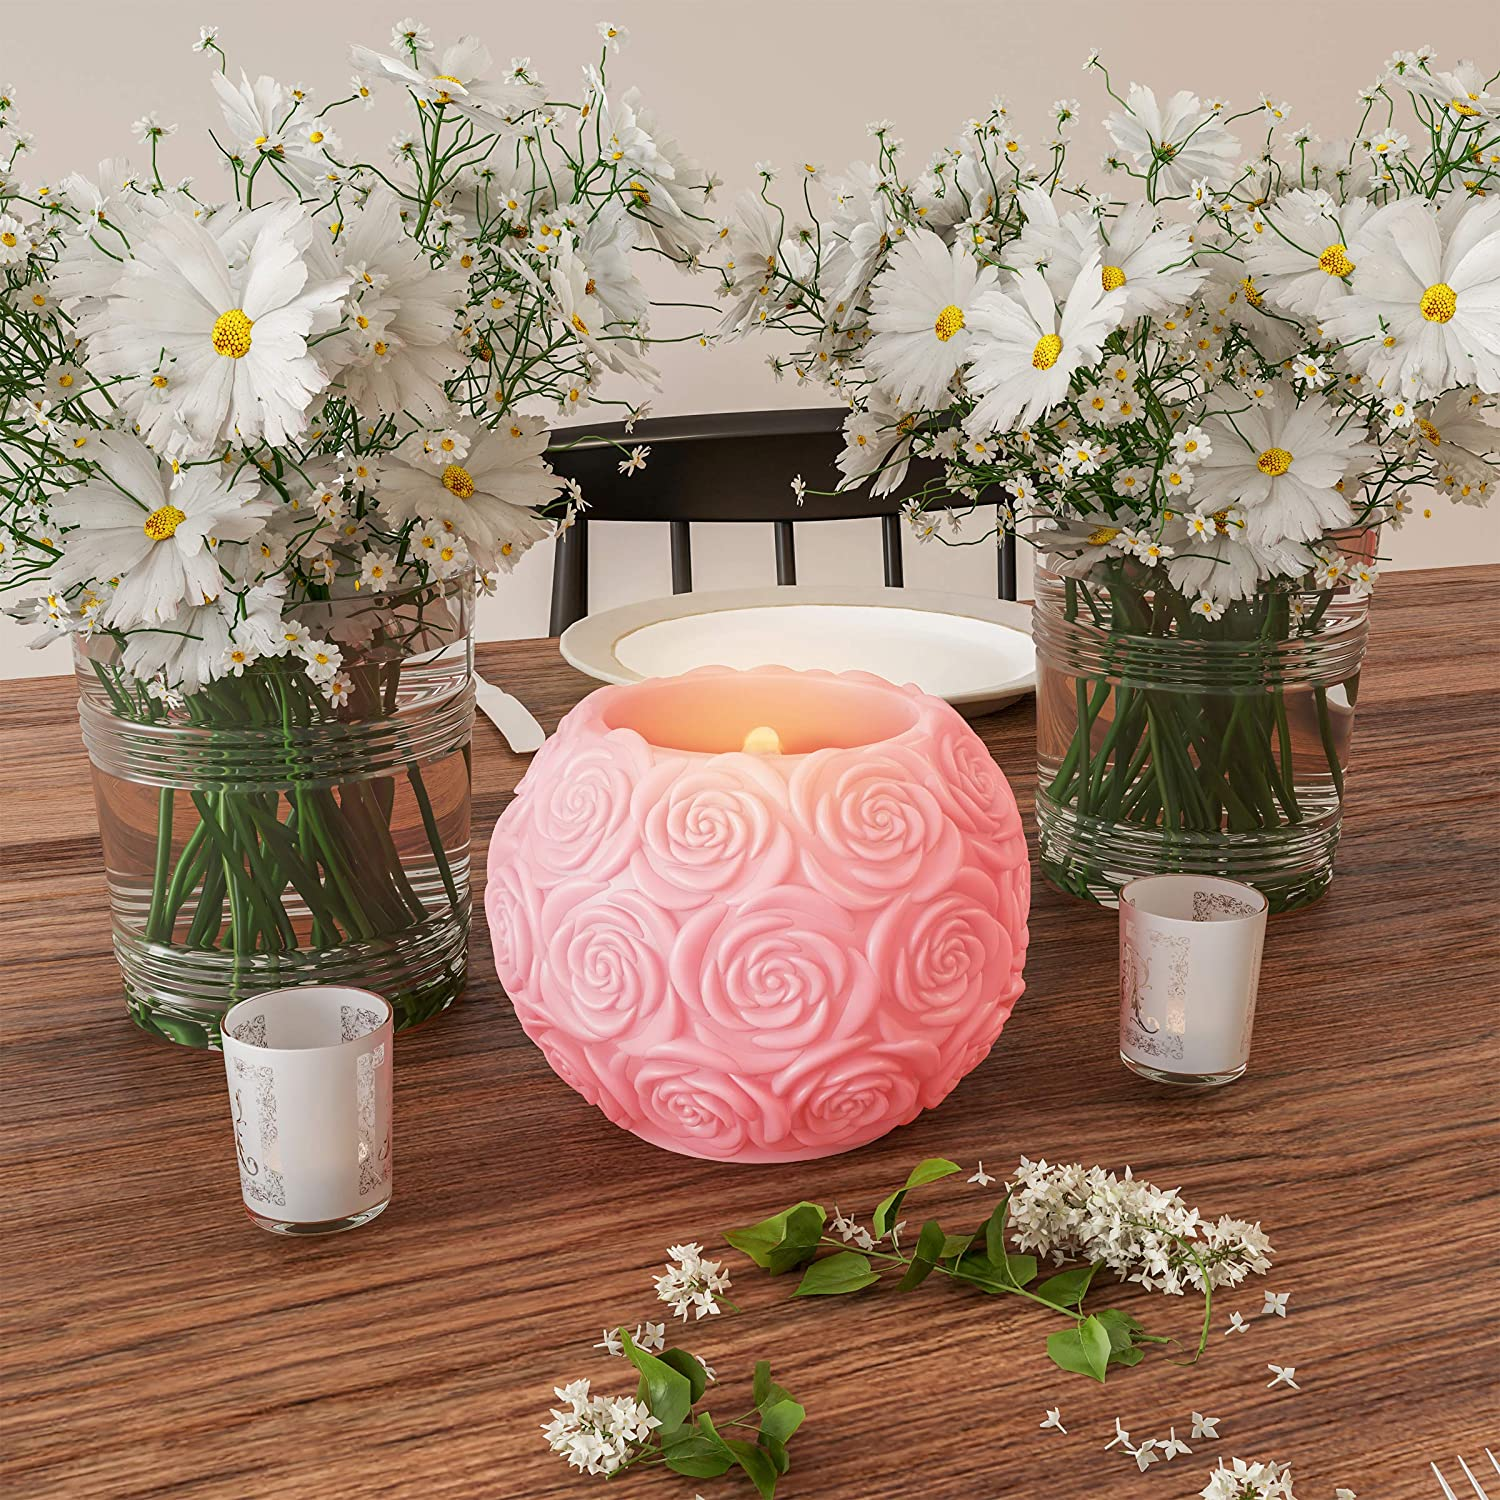 Lavish Home LED Candle with Remote Control-Rose Ball Design Scented Wax Realistic Flickering or Steady Flameless Sphere Light-Ambient Home Décor